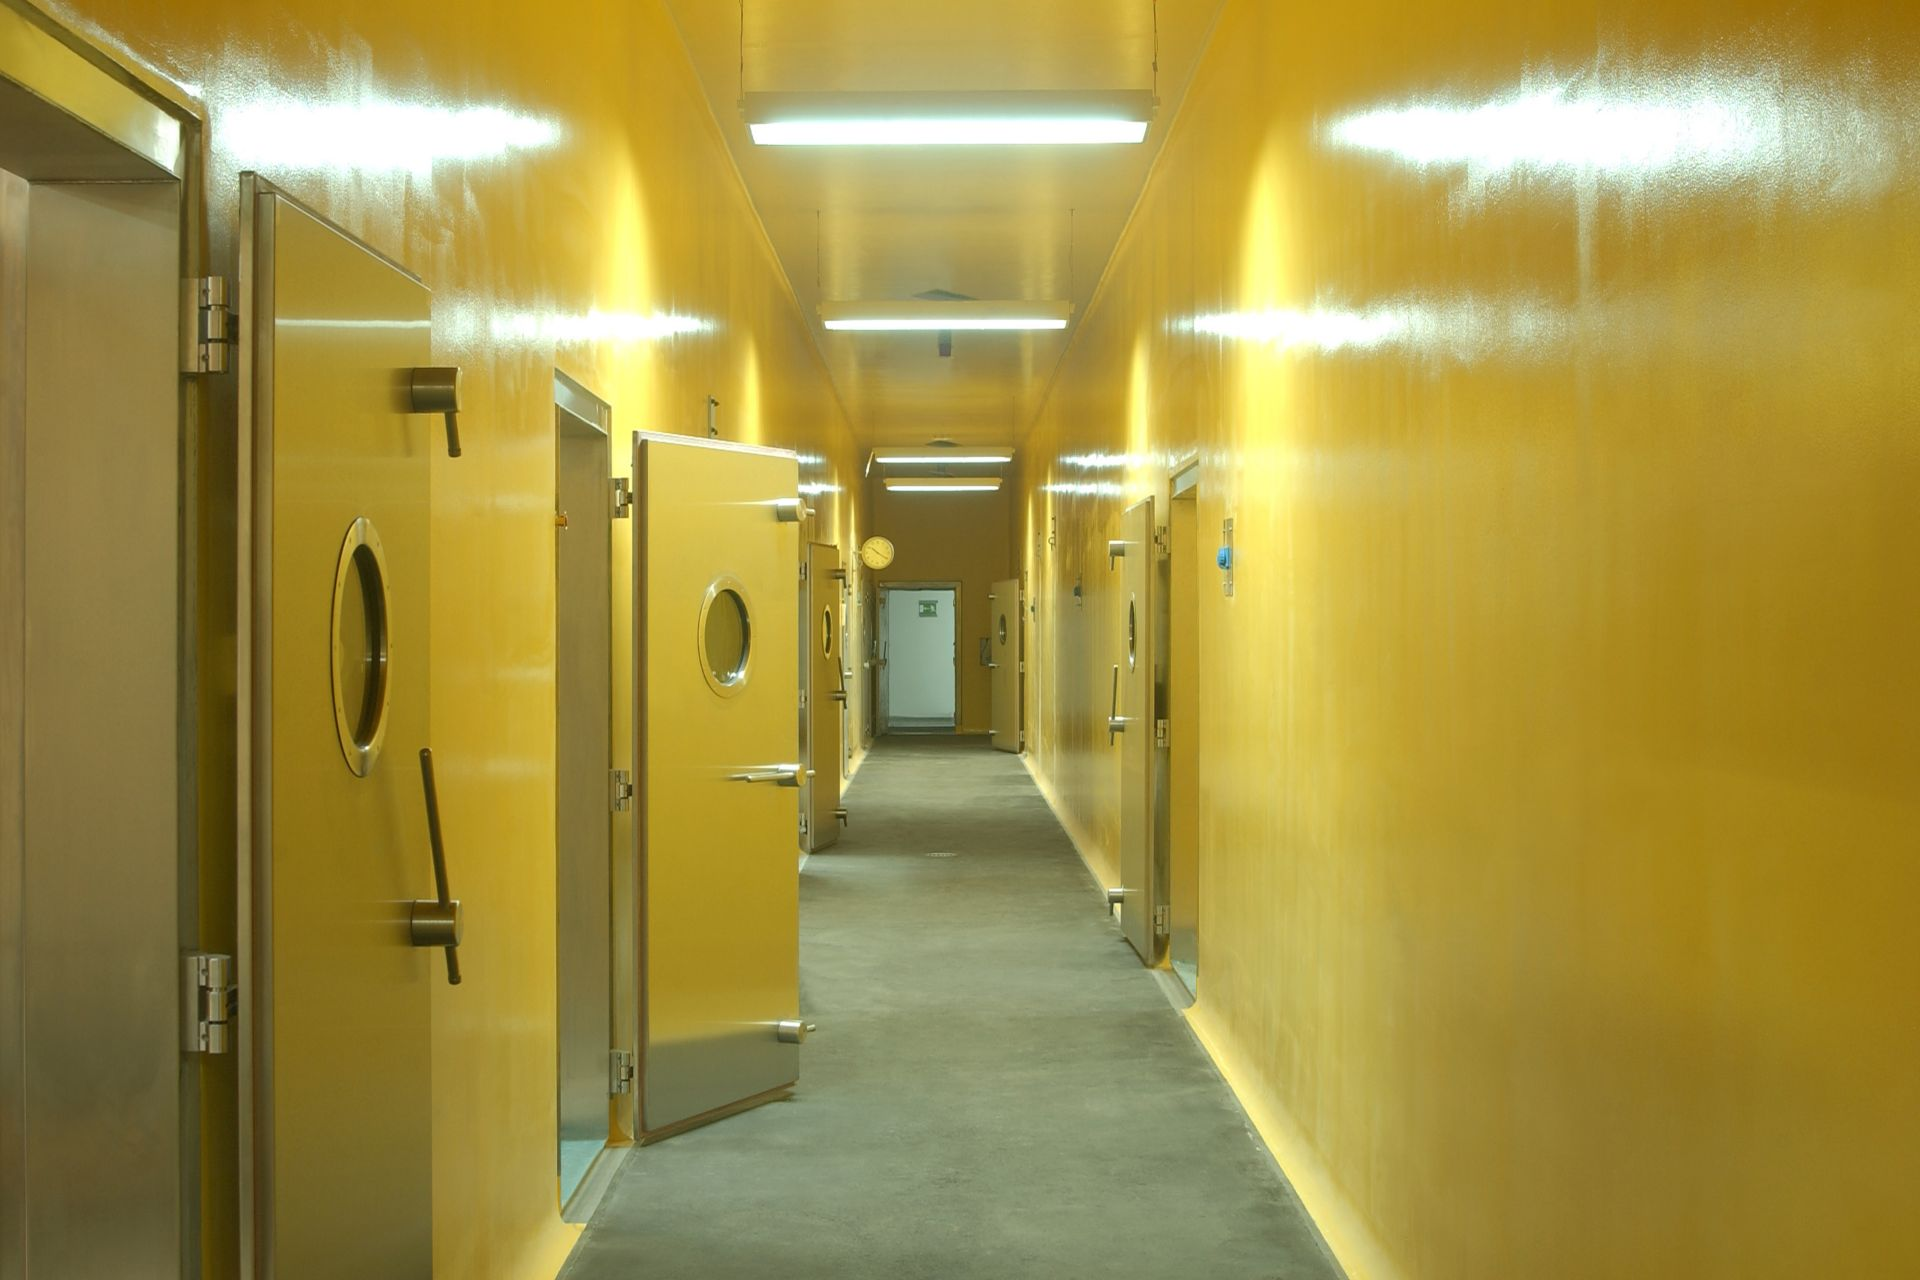 Colorful wall coating in laboratory corridor made with Sika coating systems